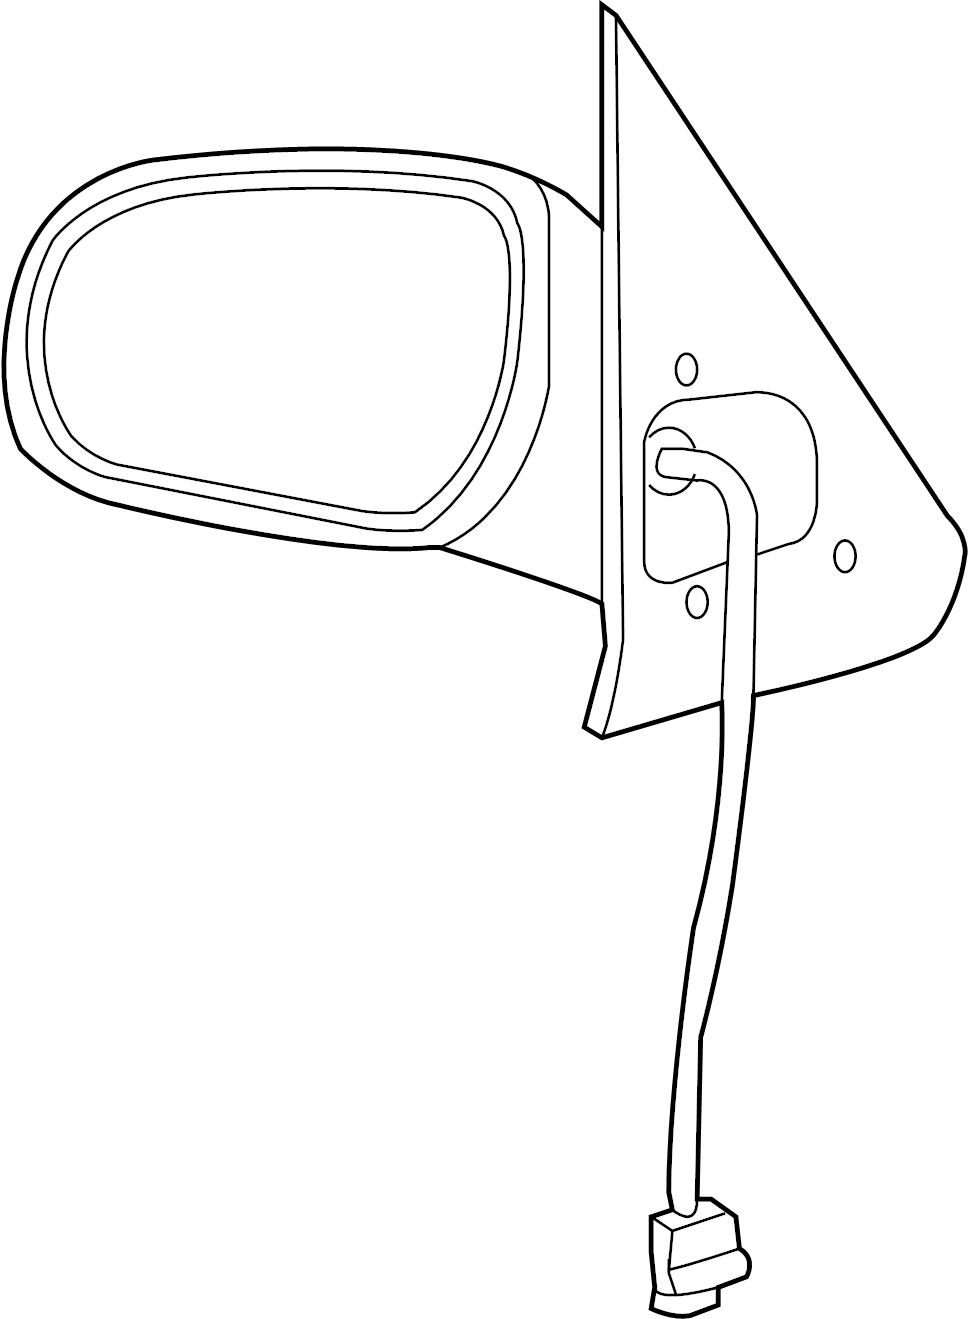 Ford Escape Door Mirror. Right, Replace, Repair